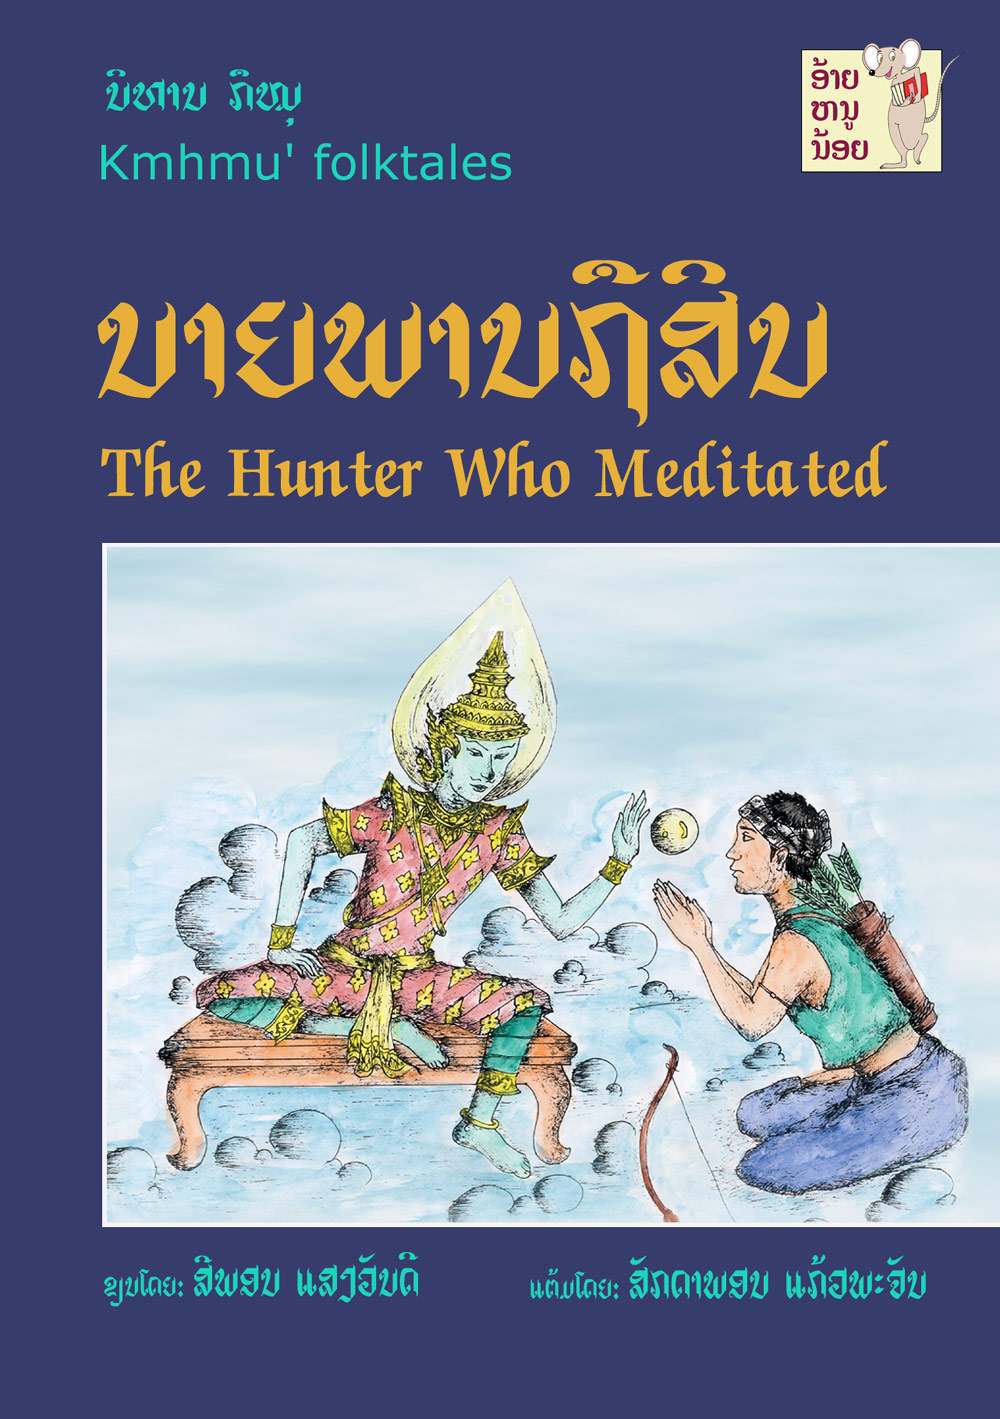 The Hunter Who Meditated large book cover, published in Lao and English